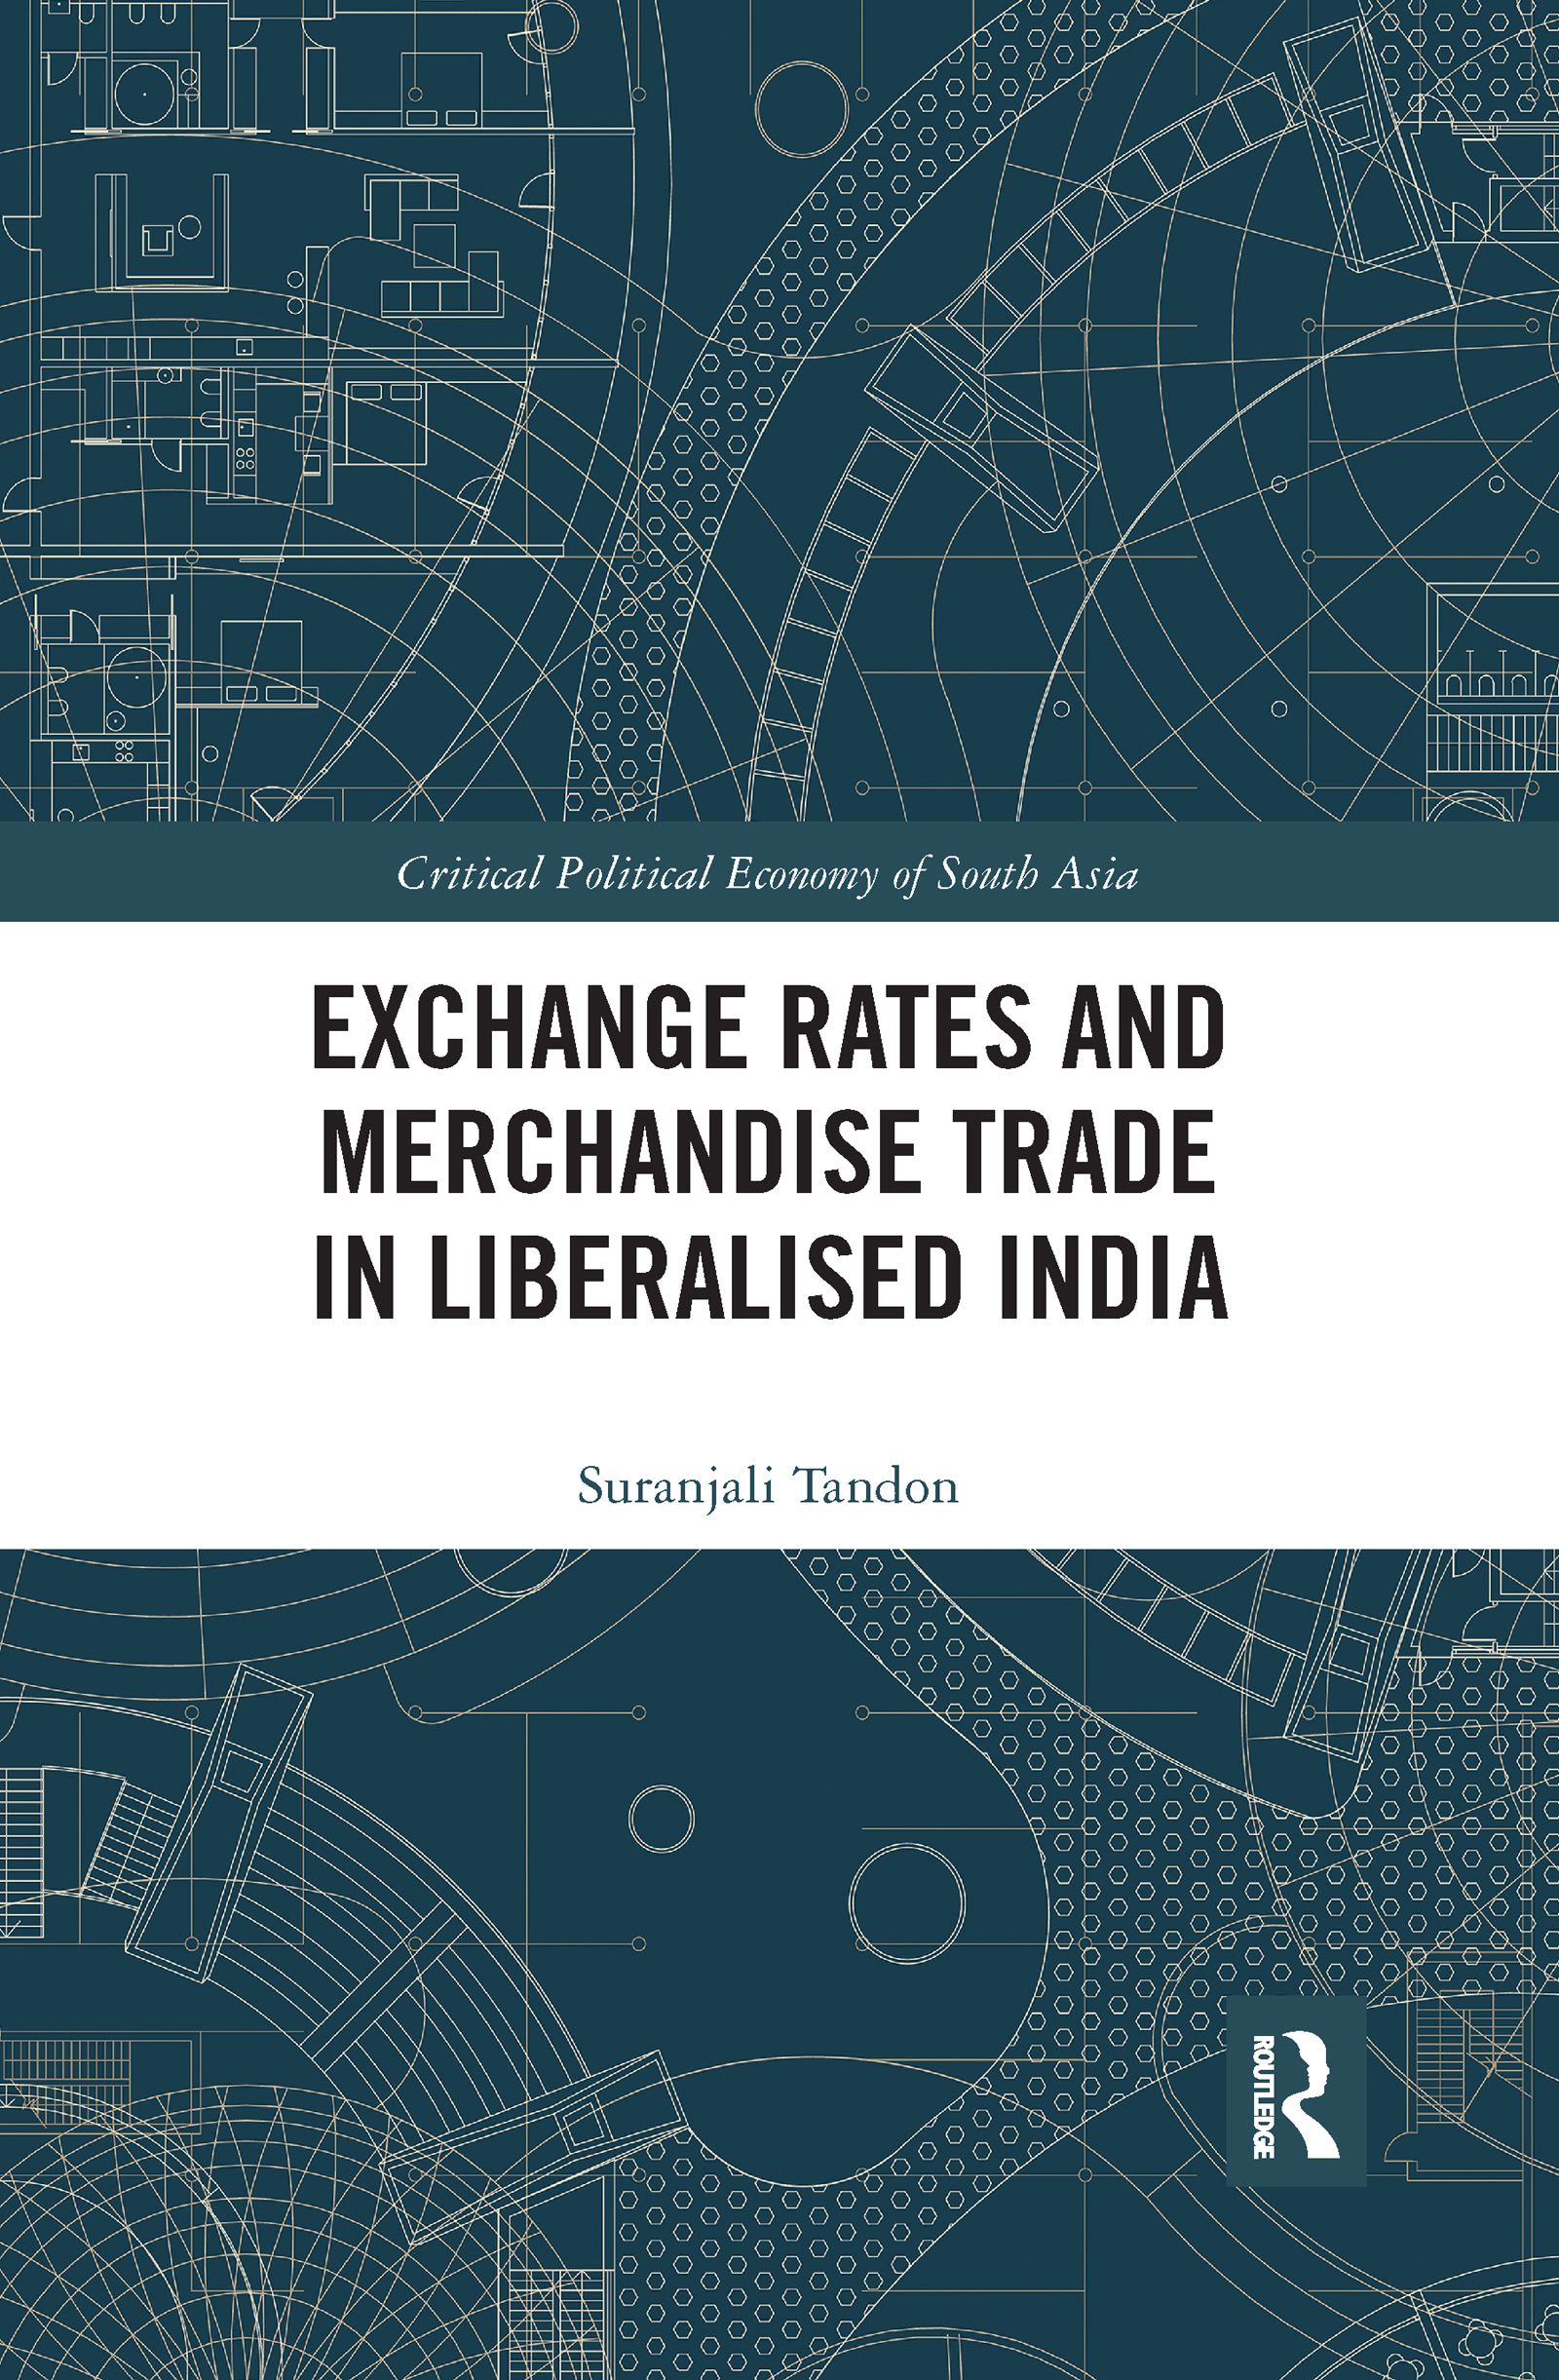 Exchange Rates and Merchandise Trade in Liberalised India